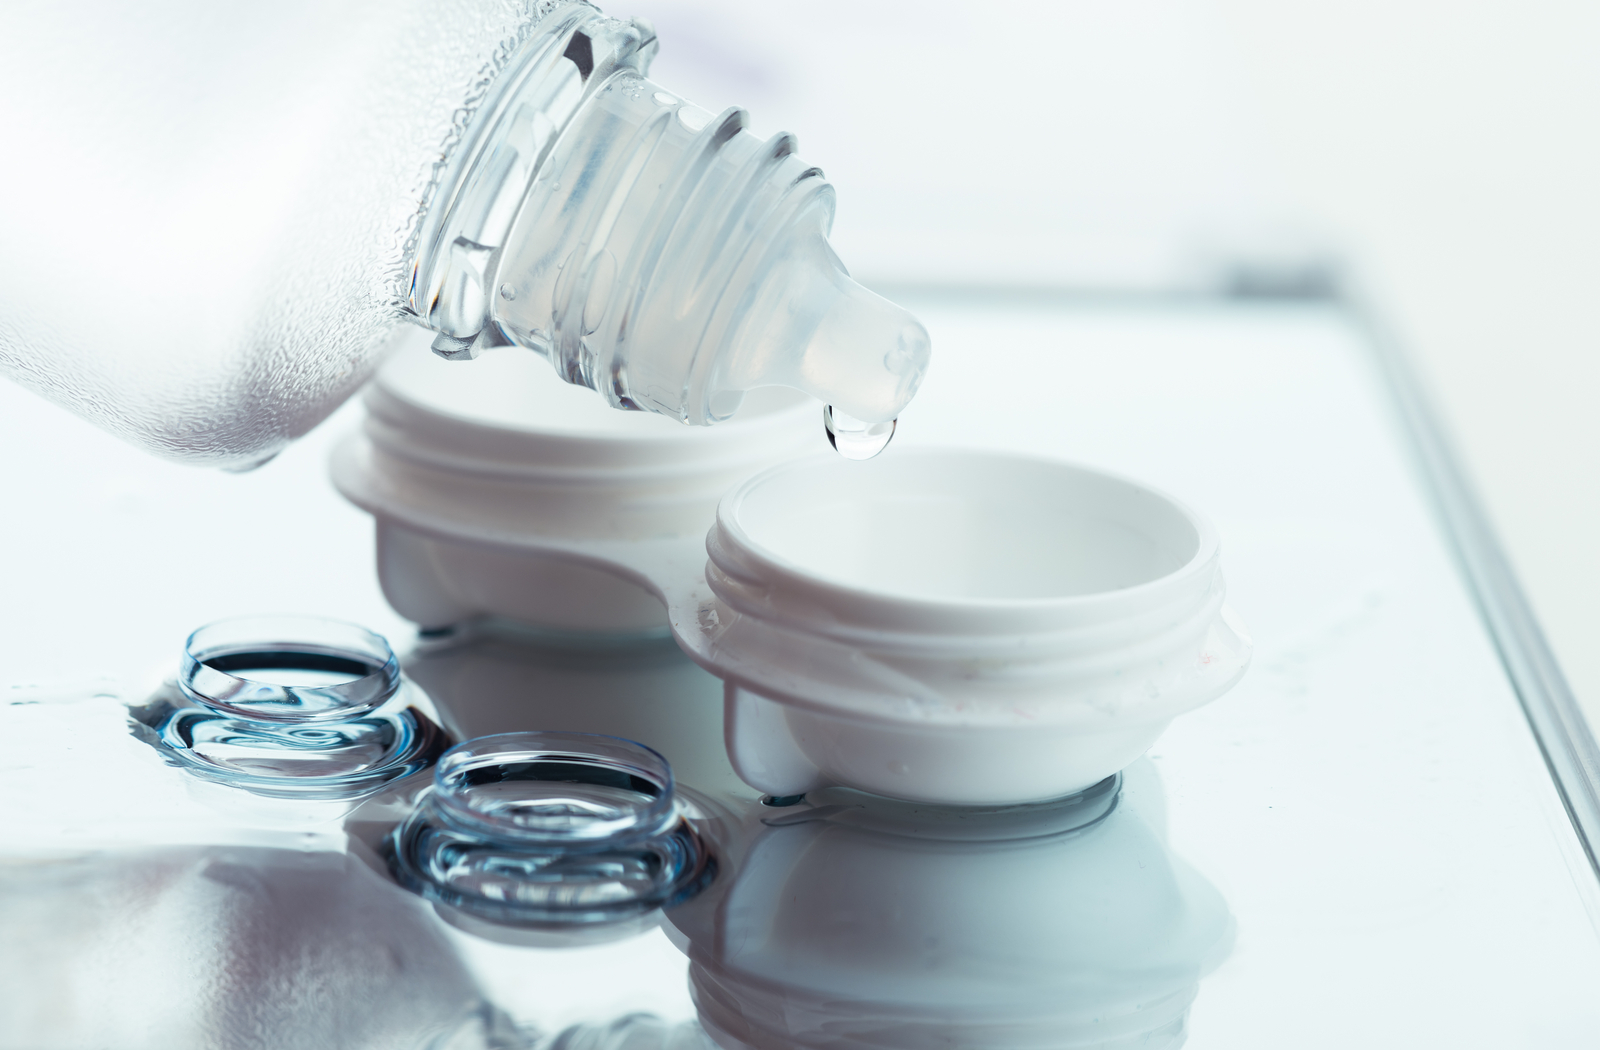 Contact lens case being filled up with solution with lenses on side of table